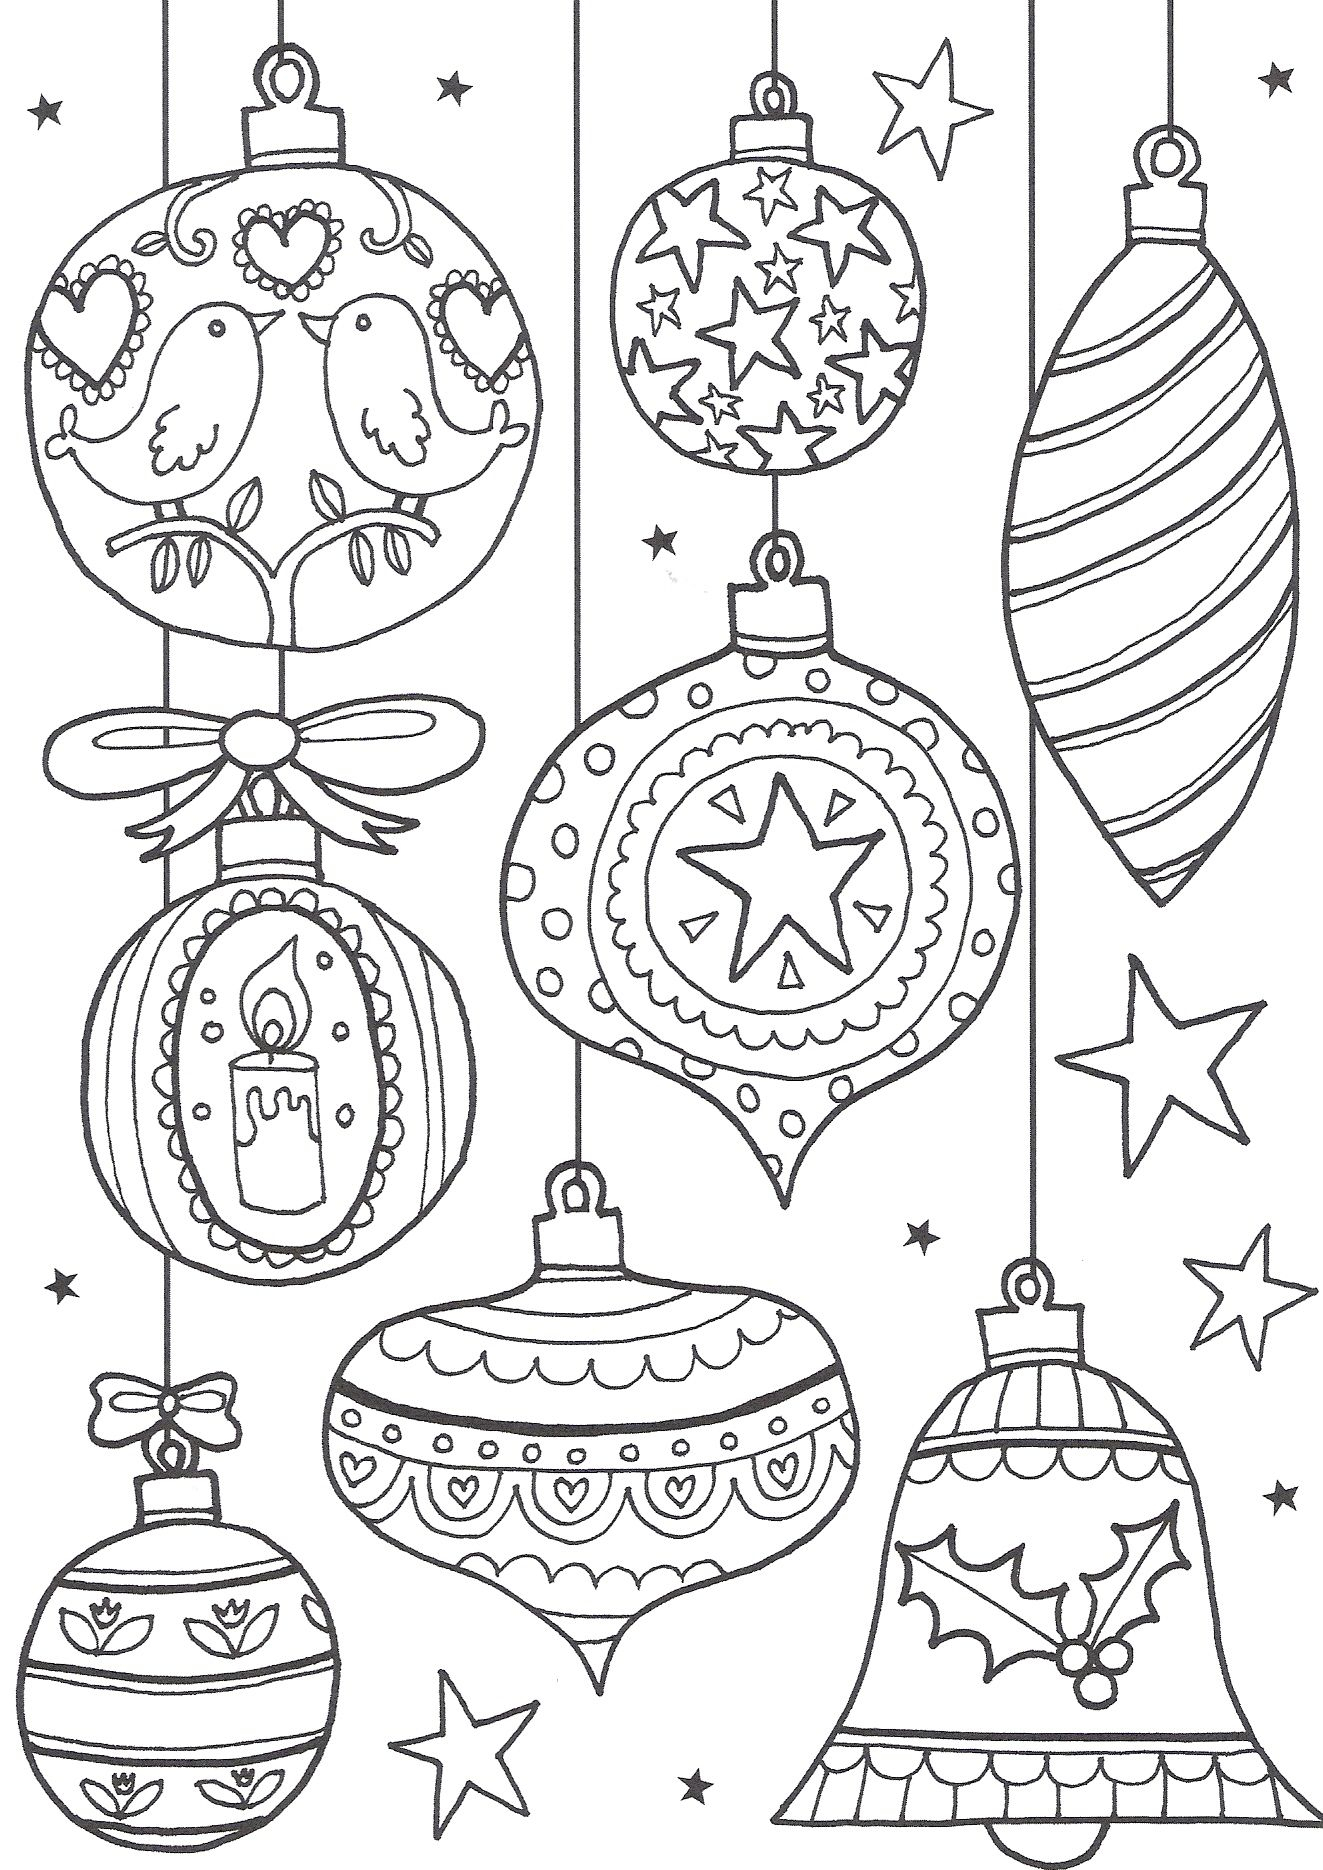 Free Christmas Colouring Pages For Adults – The Ultimate Roundup - Free Printable Holiday Coloring Pages